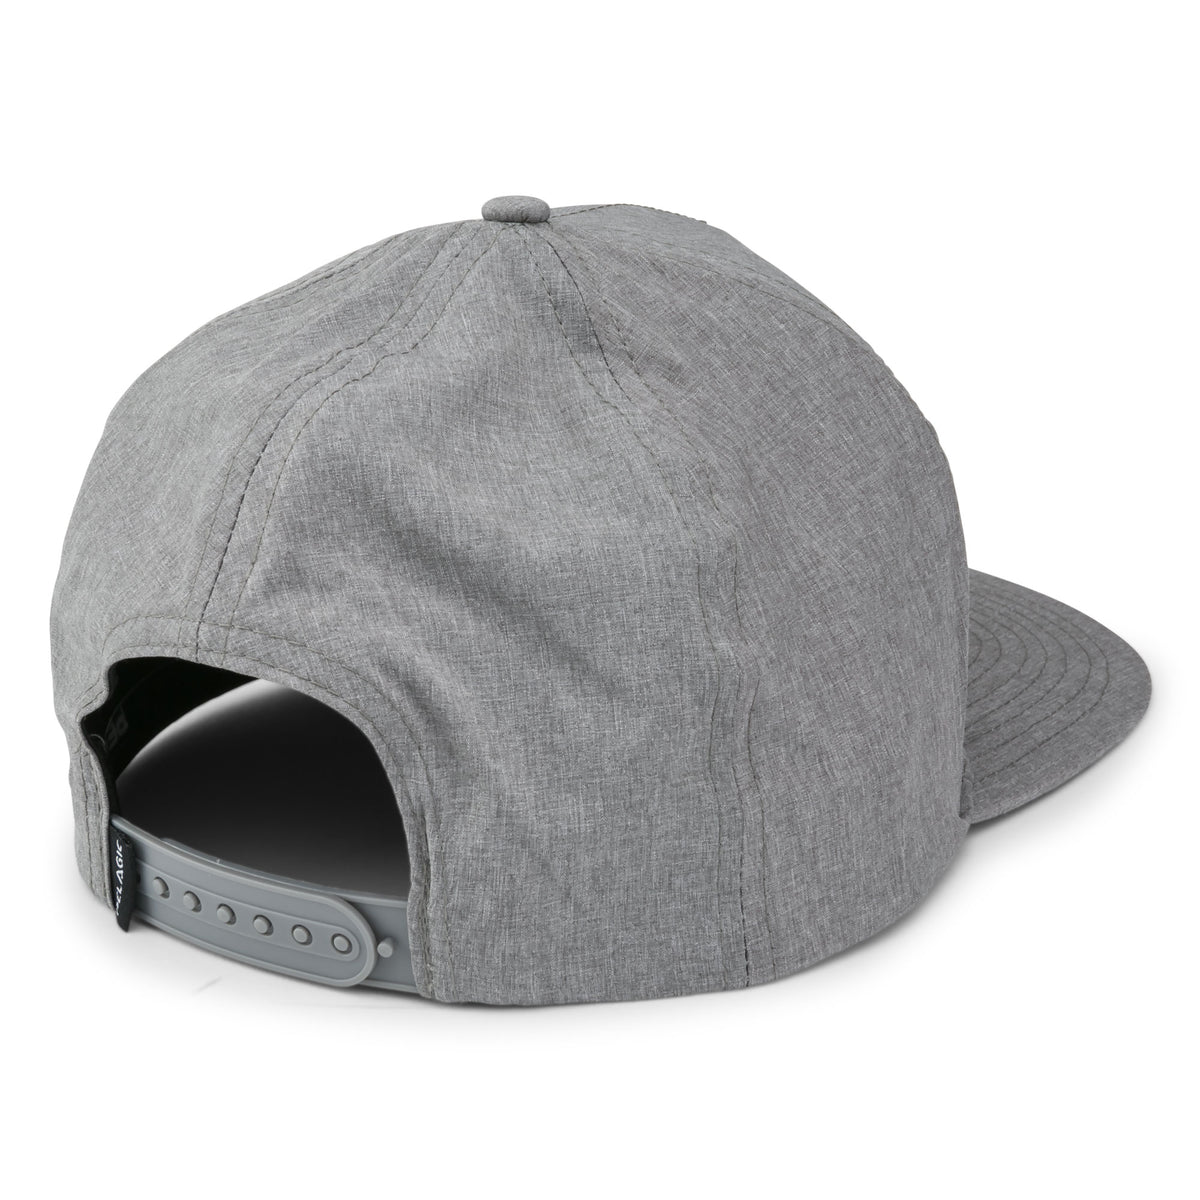 Deep Sea Snapback Hat Big Image - 2